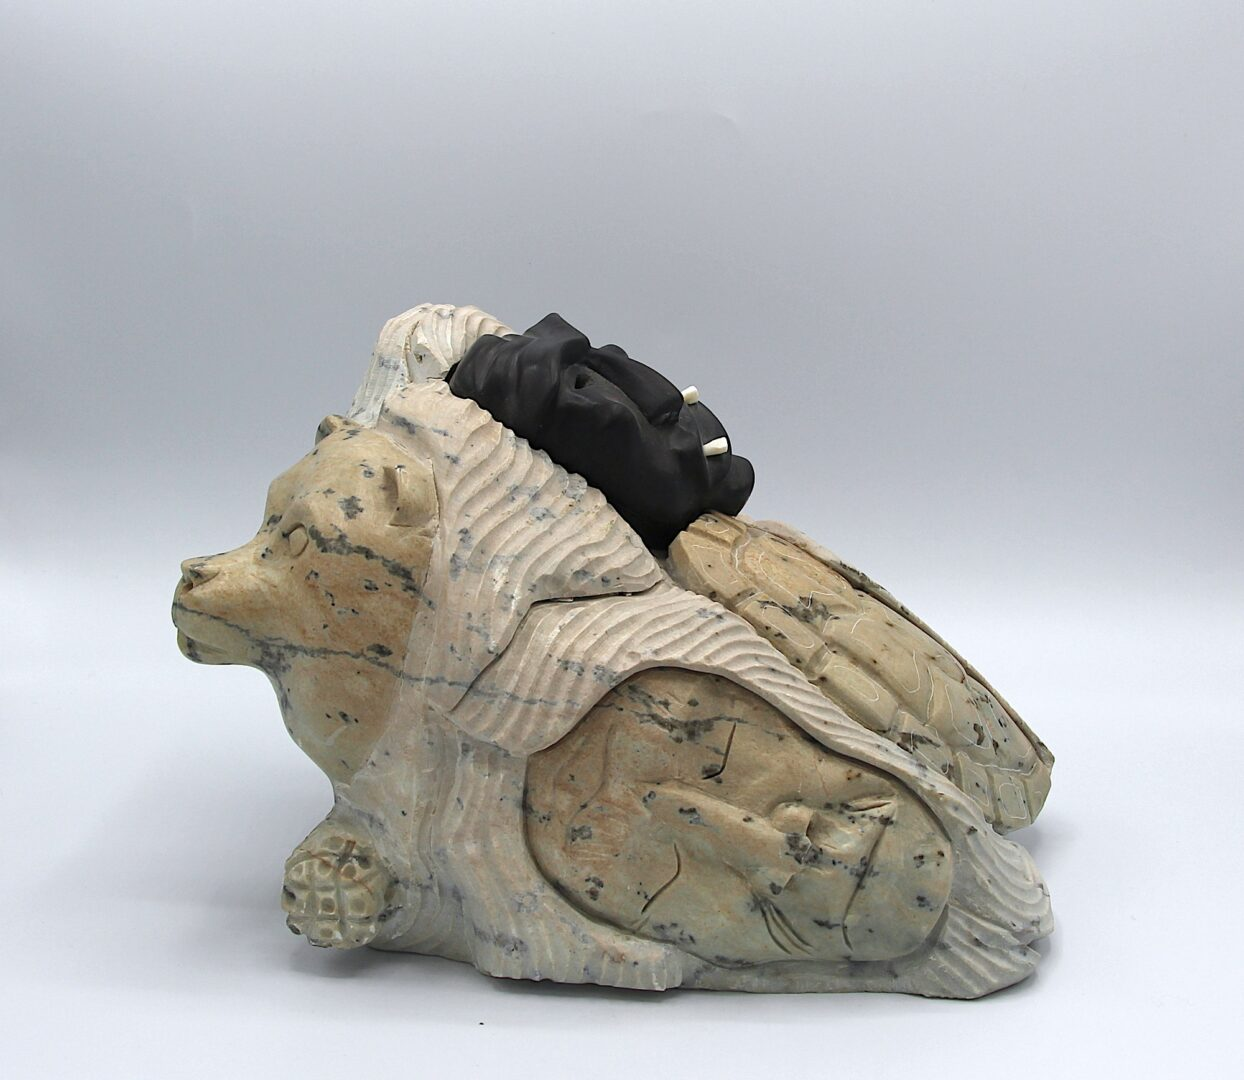 chief iroquois art sculpture made in soapstone